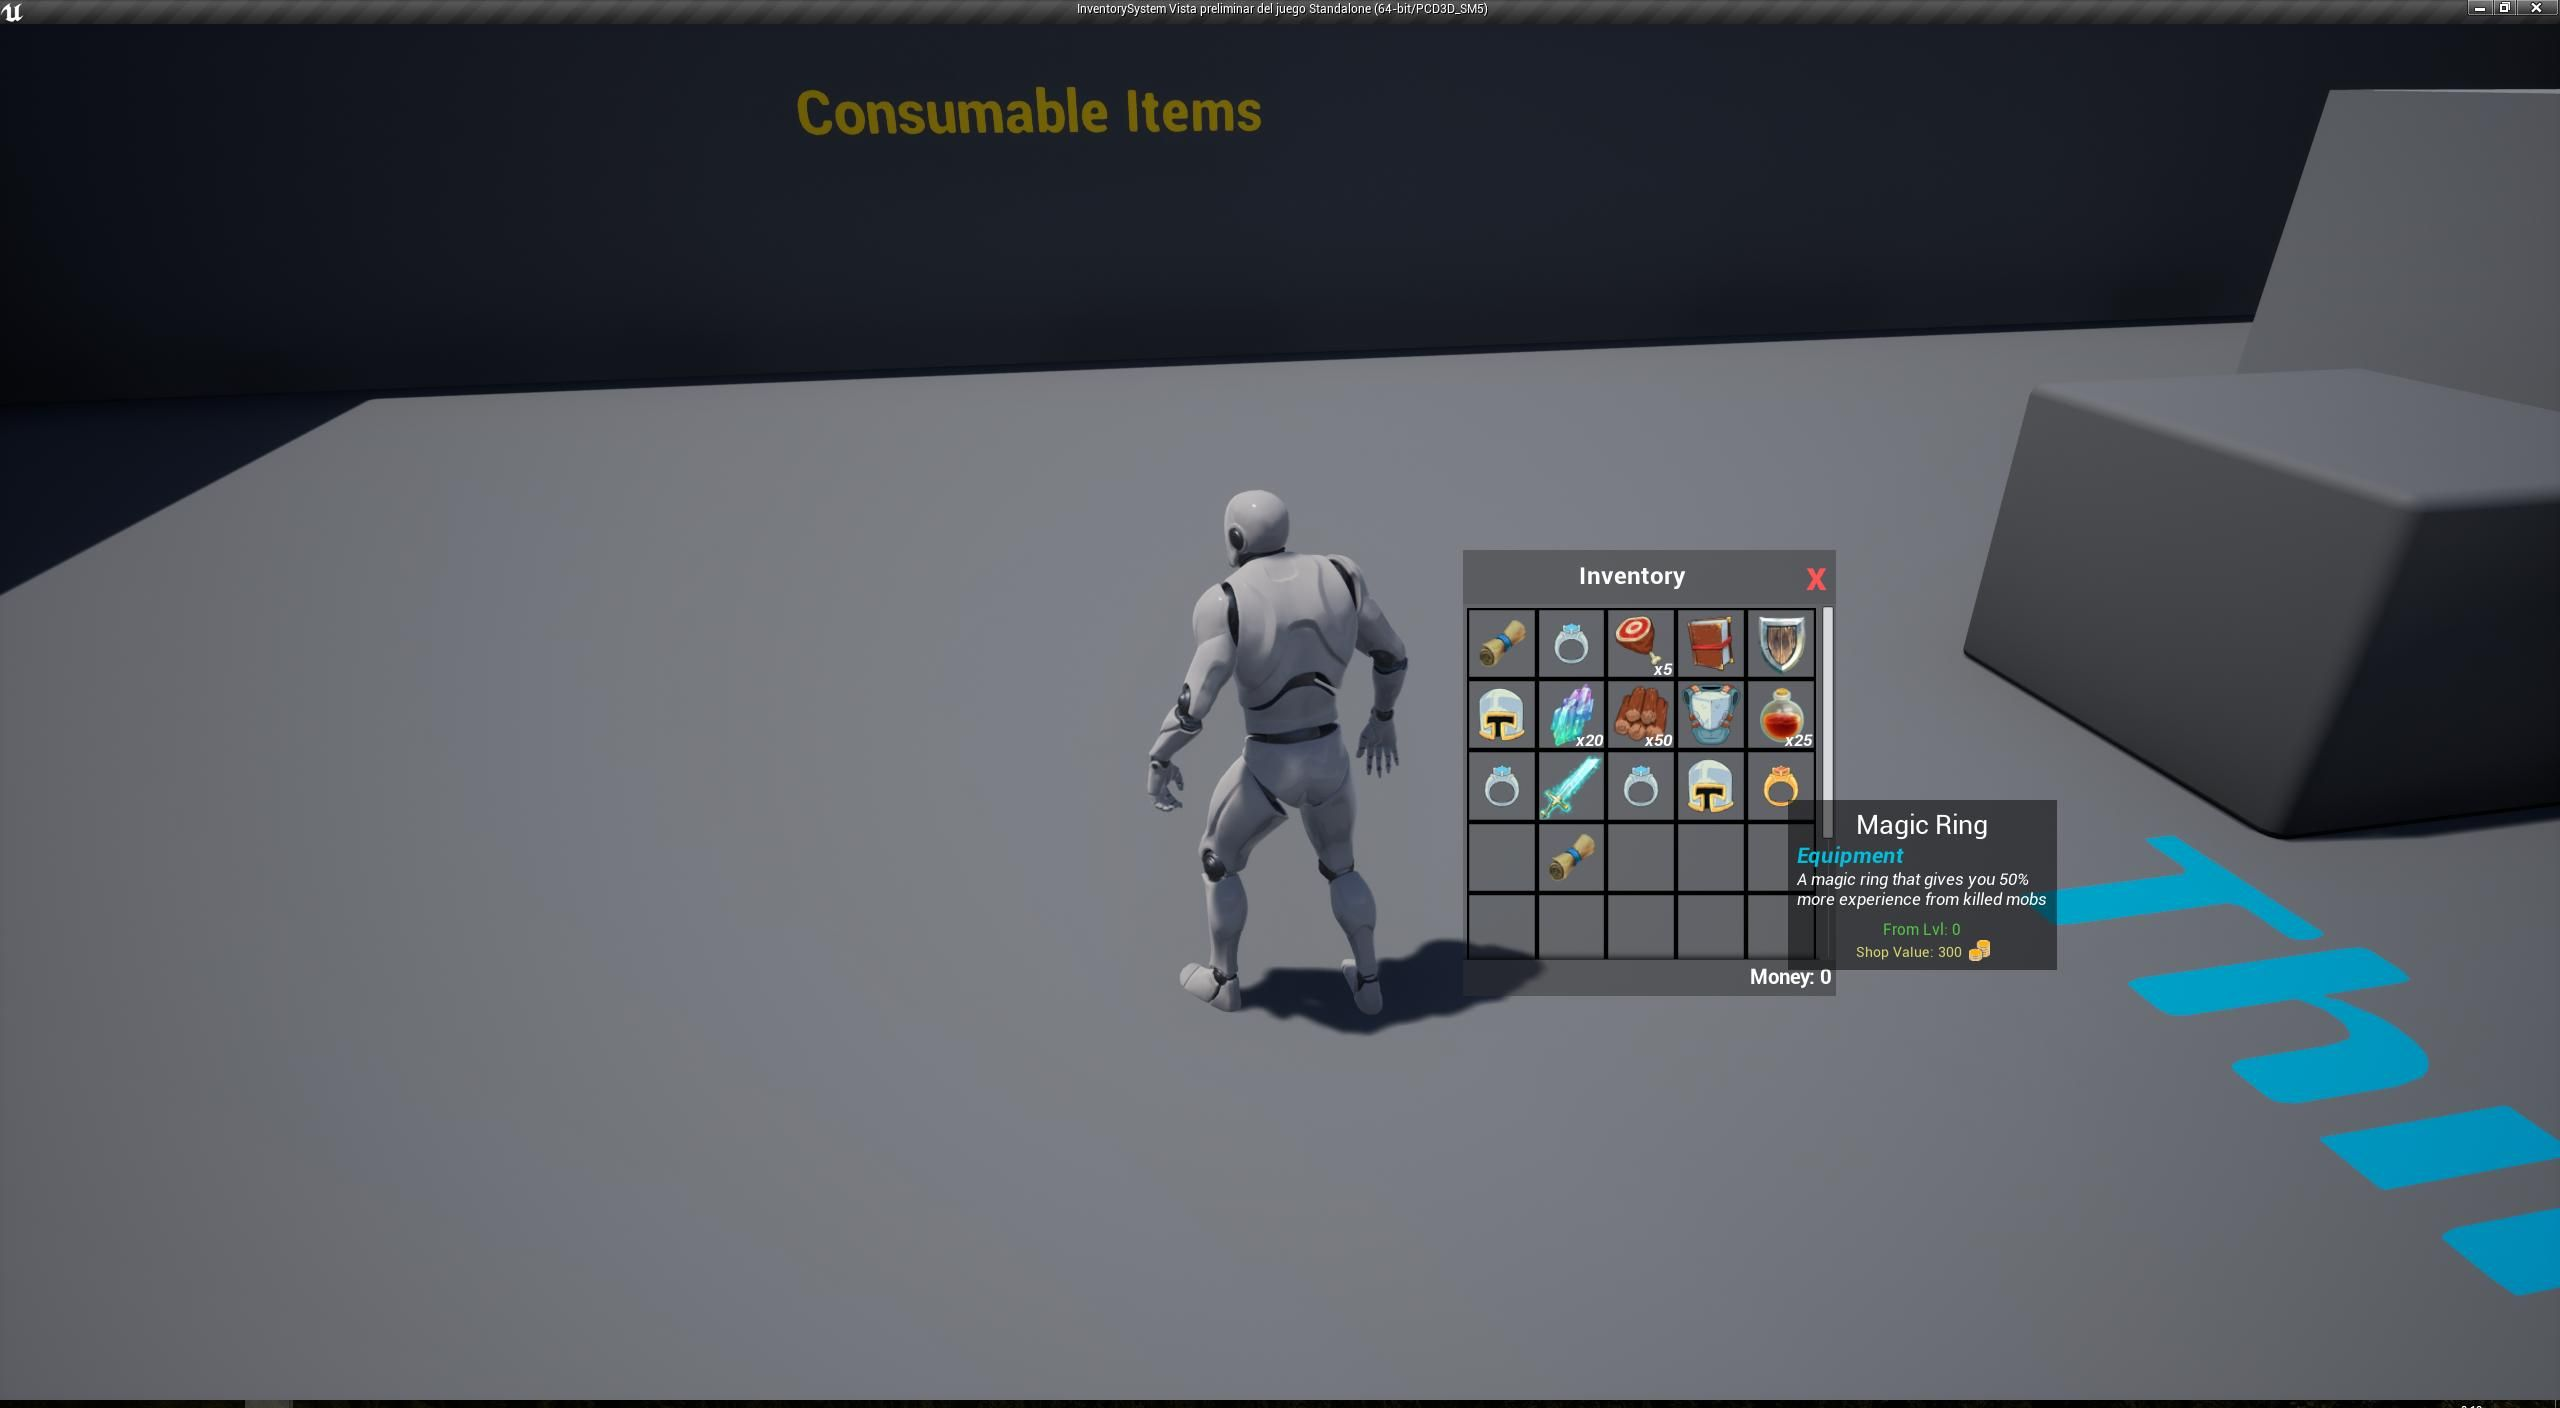 OpenRPG] : Free Unreal Engine 4 RPG Systems! - Unreal Engine